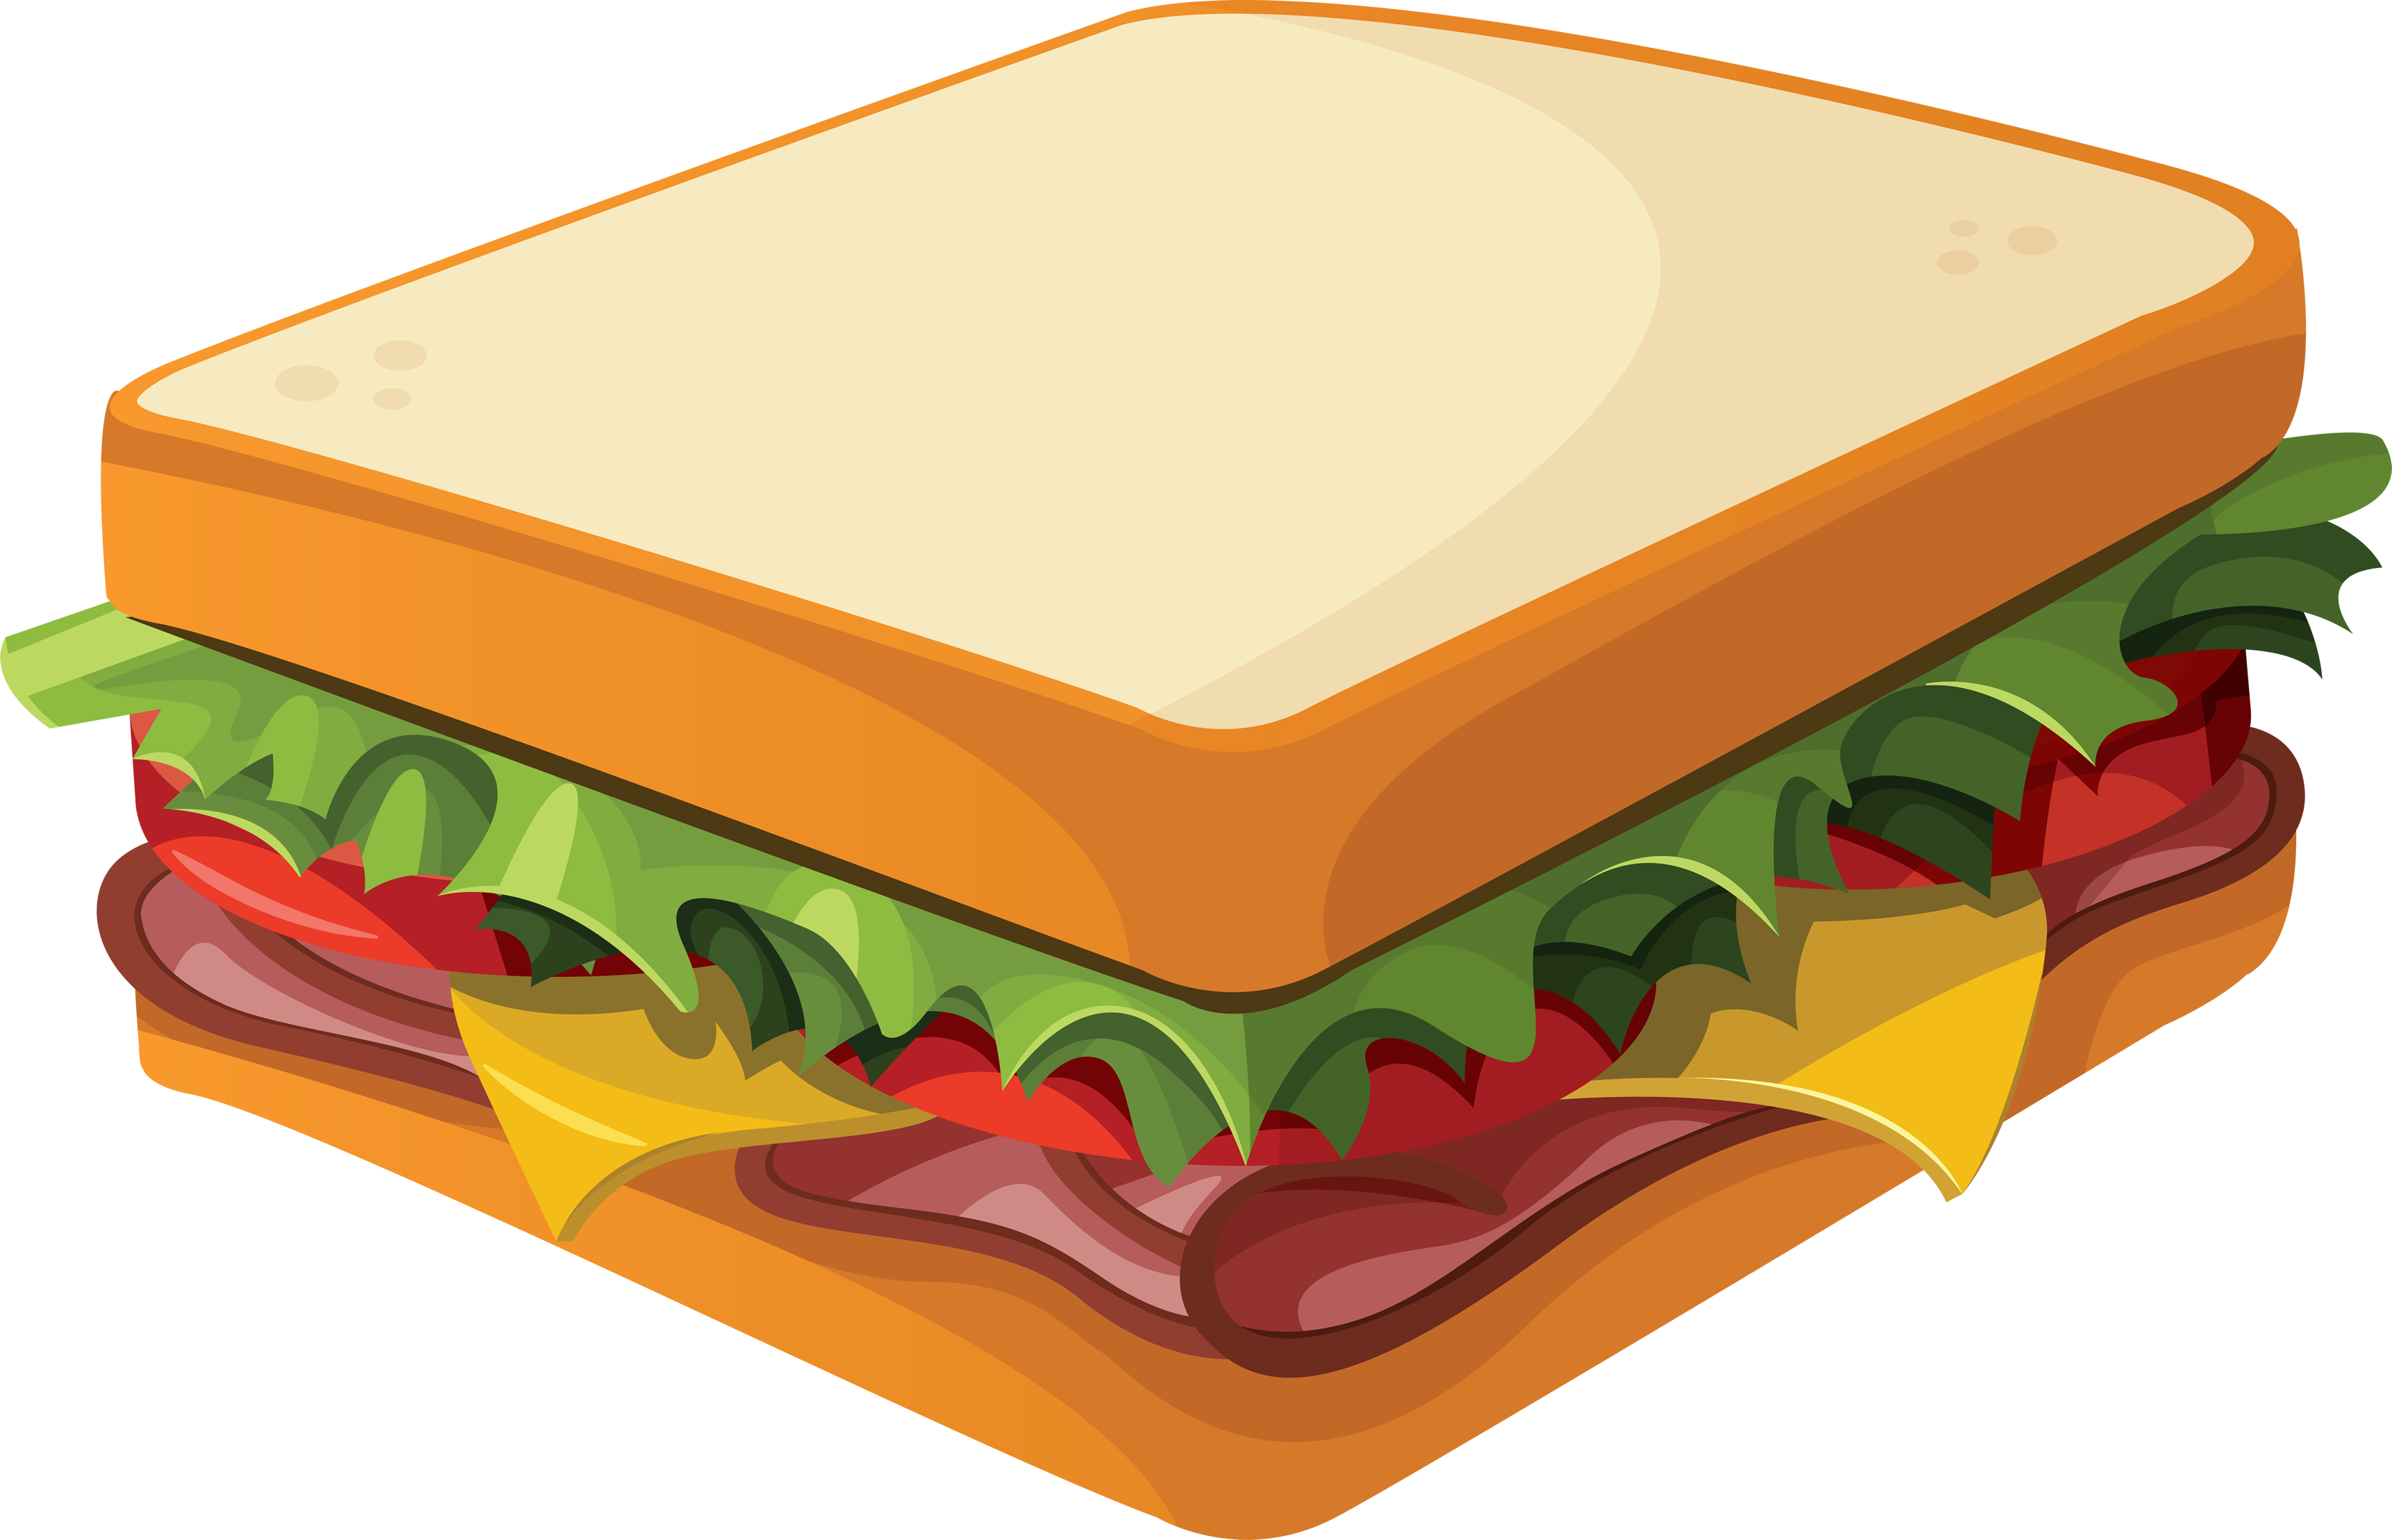 Cartoon Sub Sandwich Clipart - The Cliparts